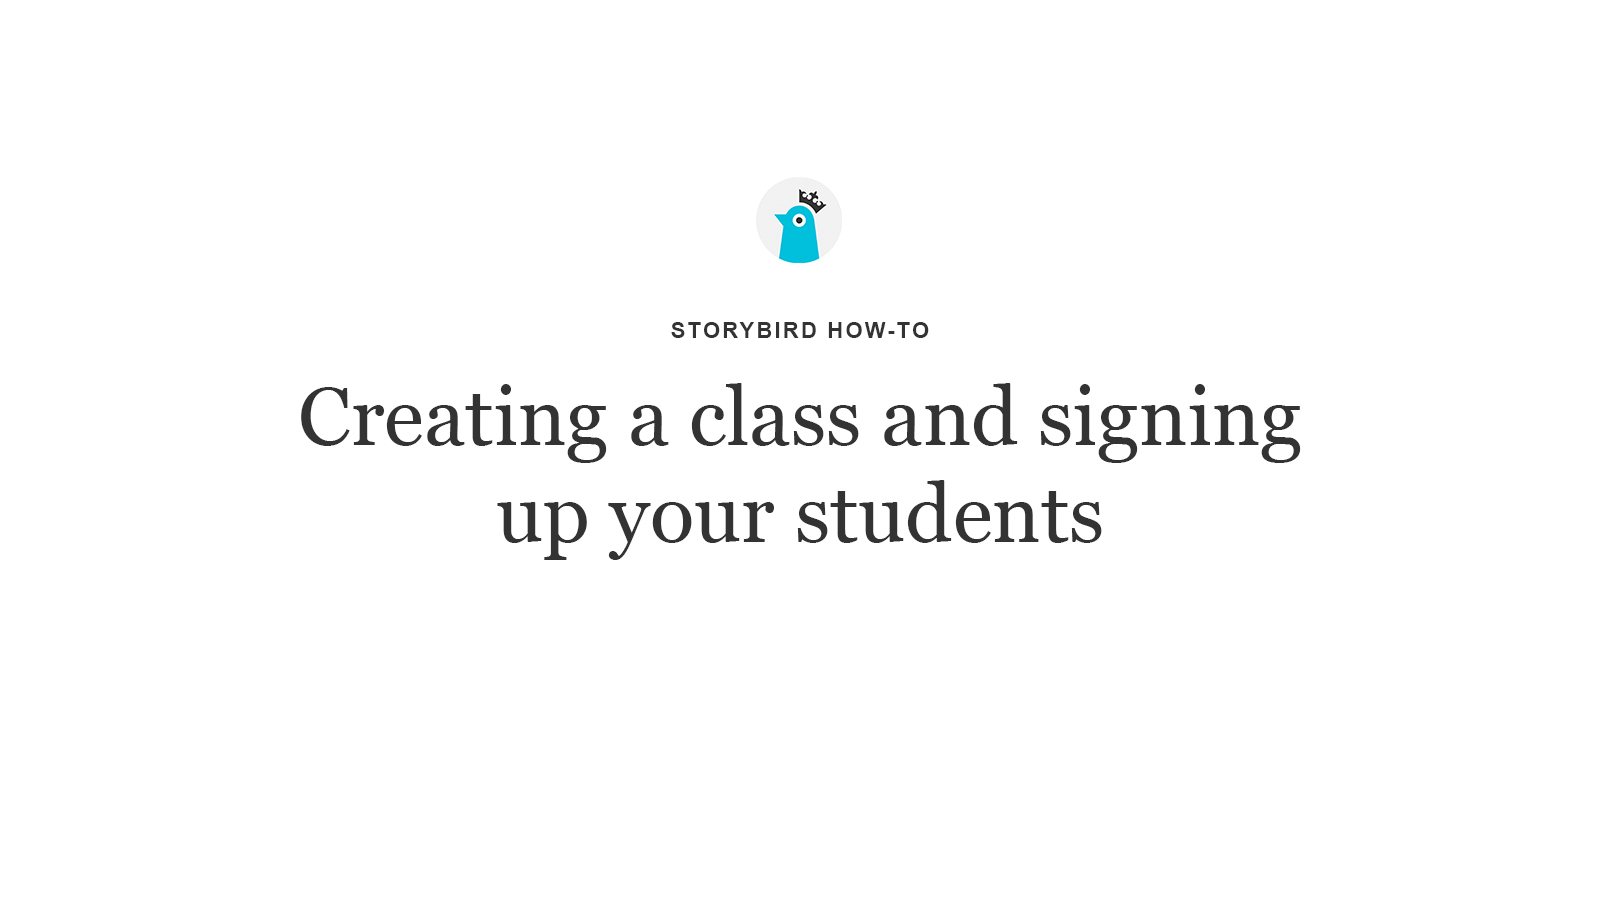 How to create a class on Storybird